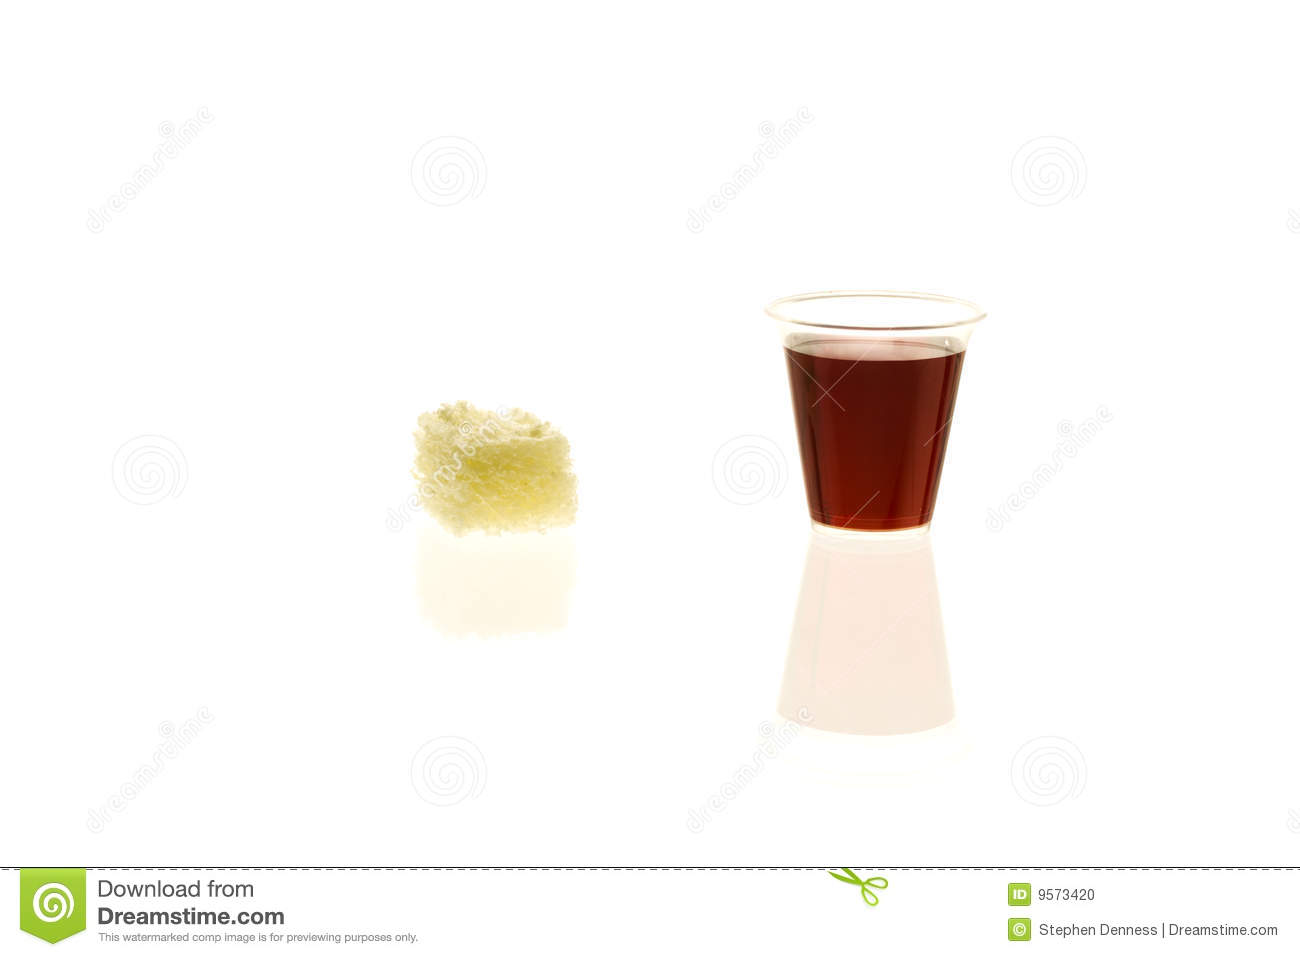 More Similar Stock Images Of   Individual Communion Cup With Bread